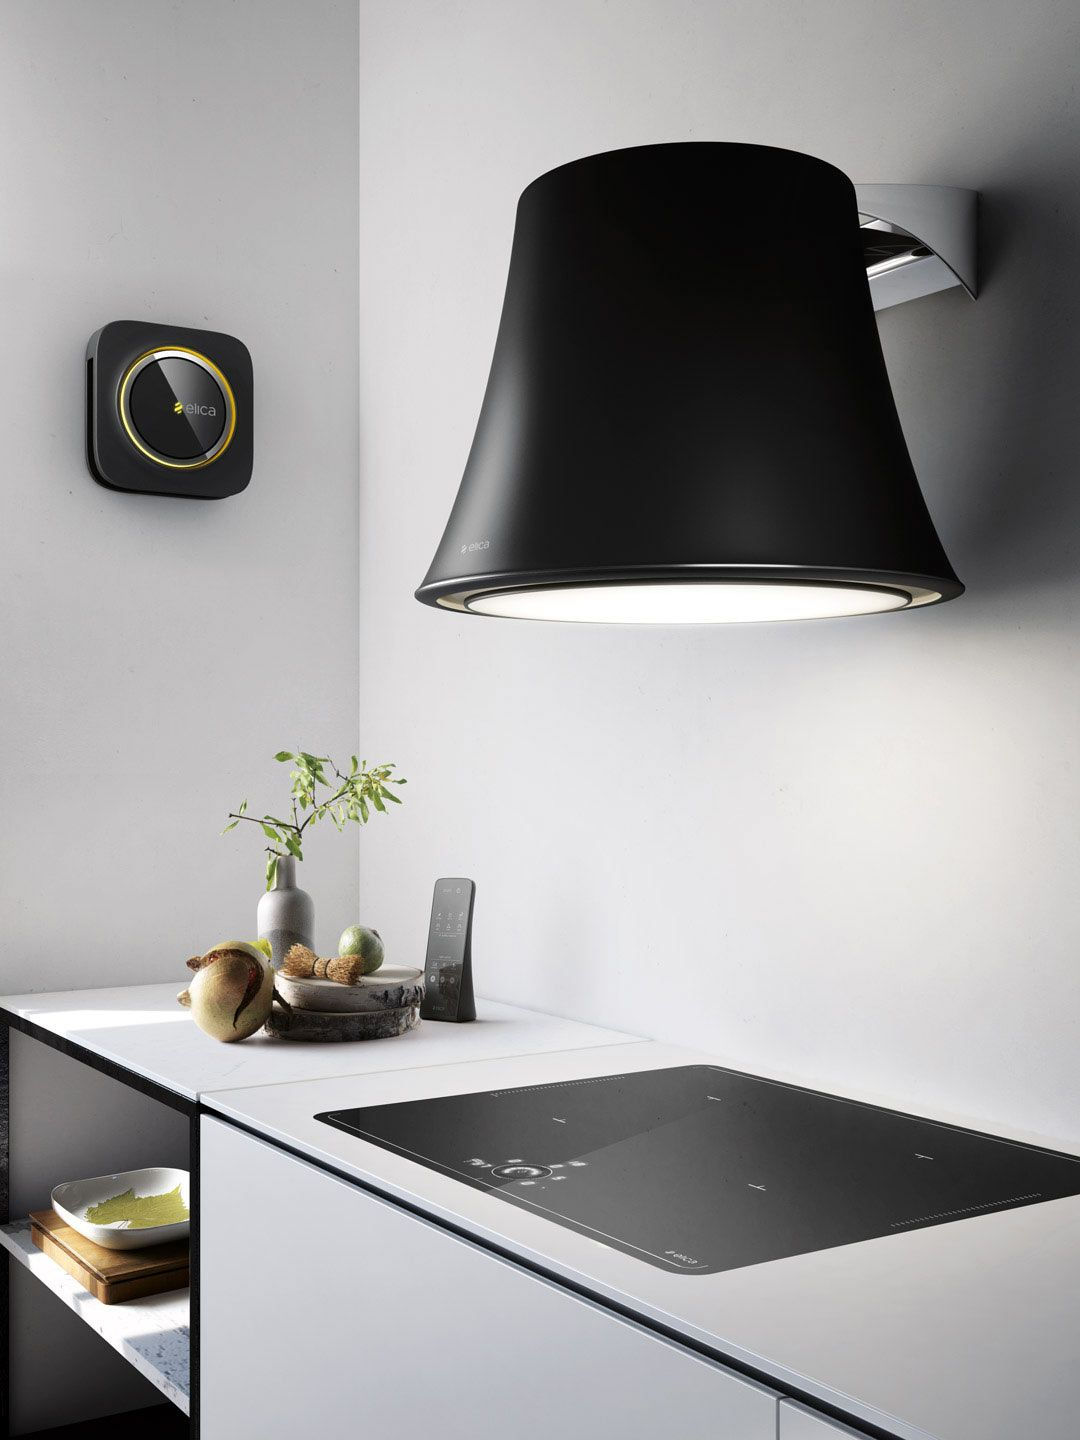 Snap by Elica - Design your air | Cappa cucina ...